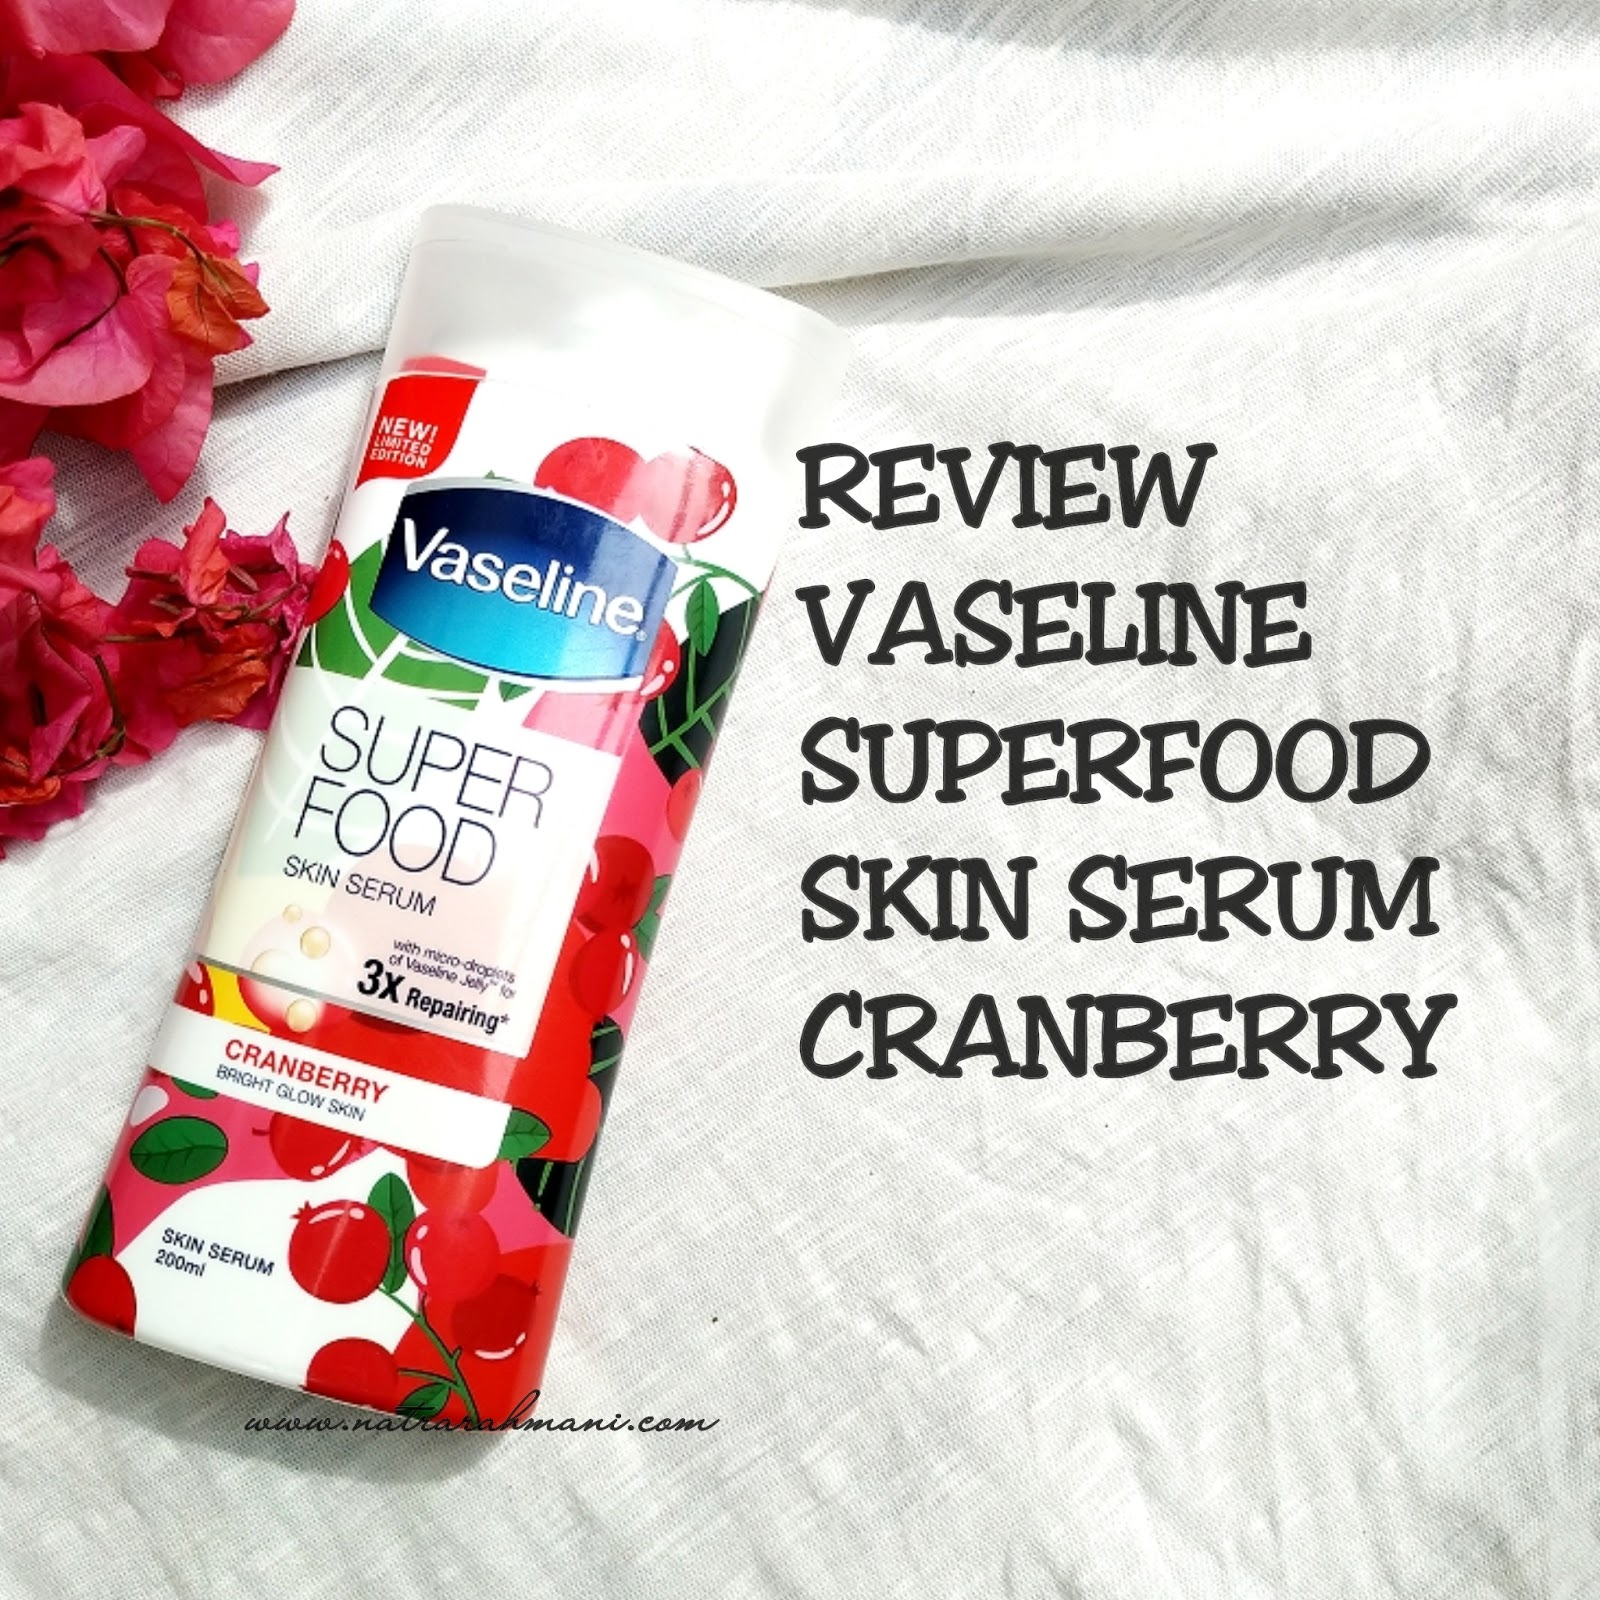 review-vaseline-superfood-skin-serum-natrarahmani